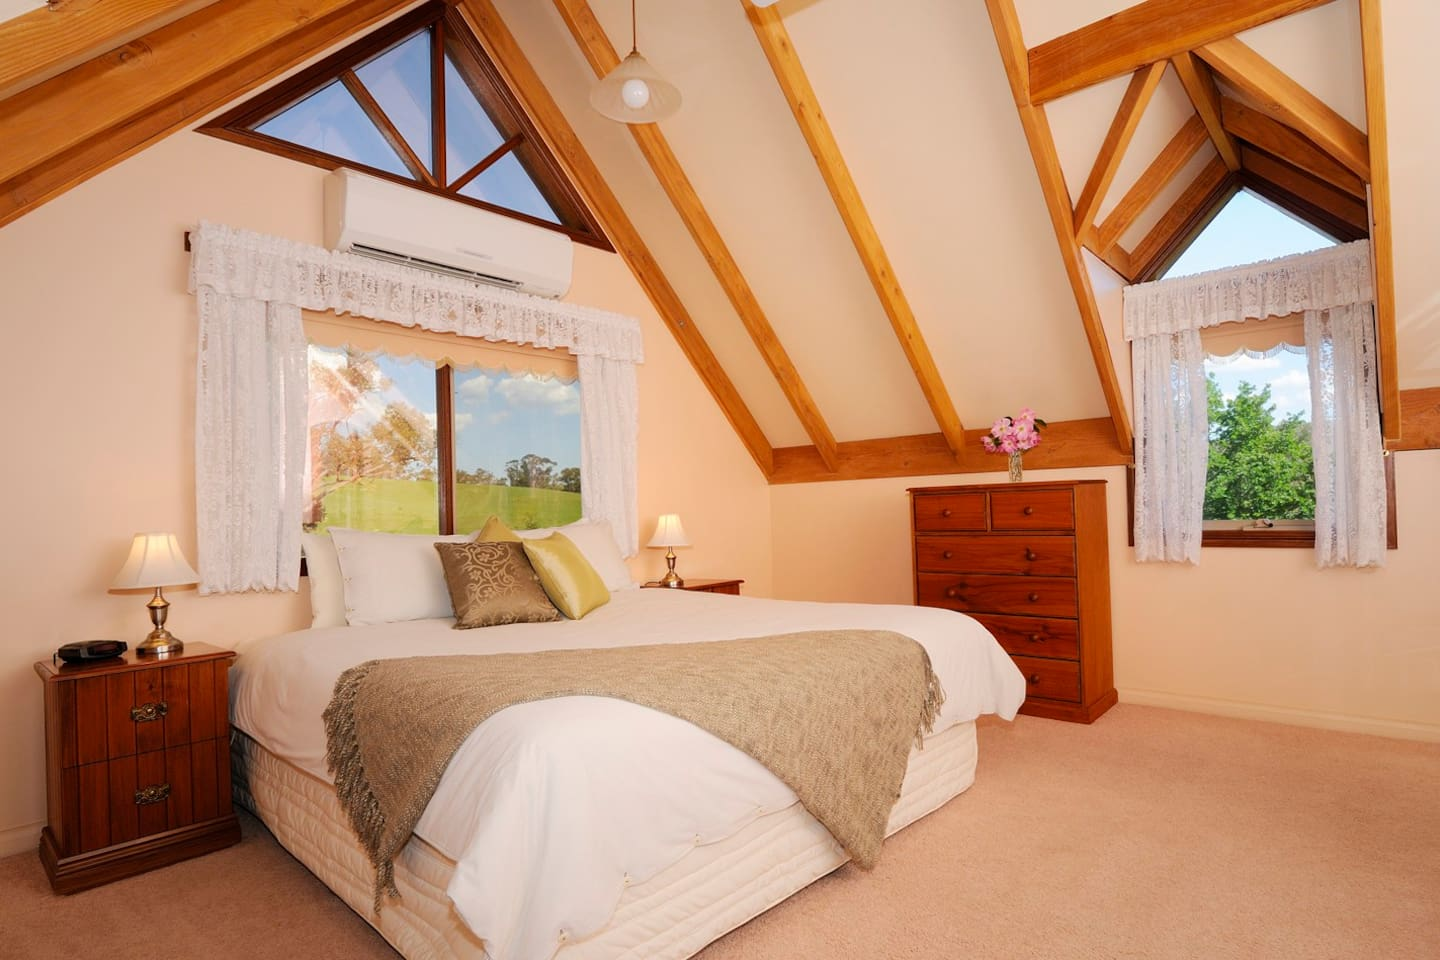 Upstairs in the loft cottages you will find a large air conditioned bedroom with soaring cathedral ceilings, a king size bed, and stunning views across the property